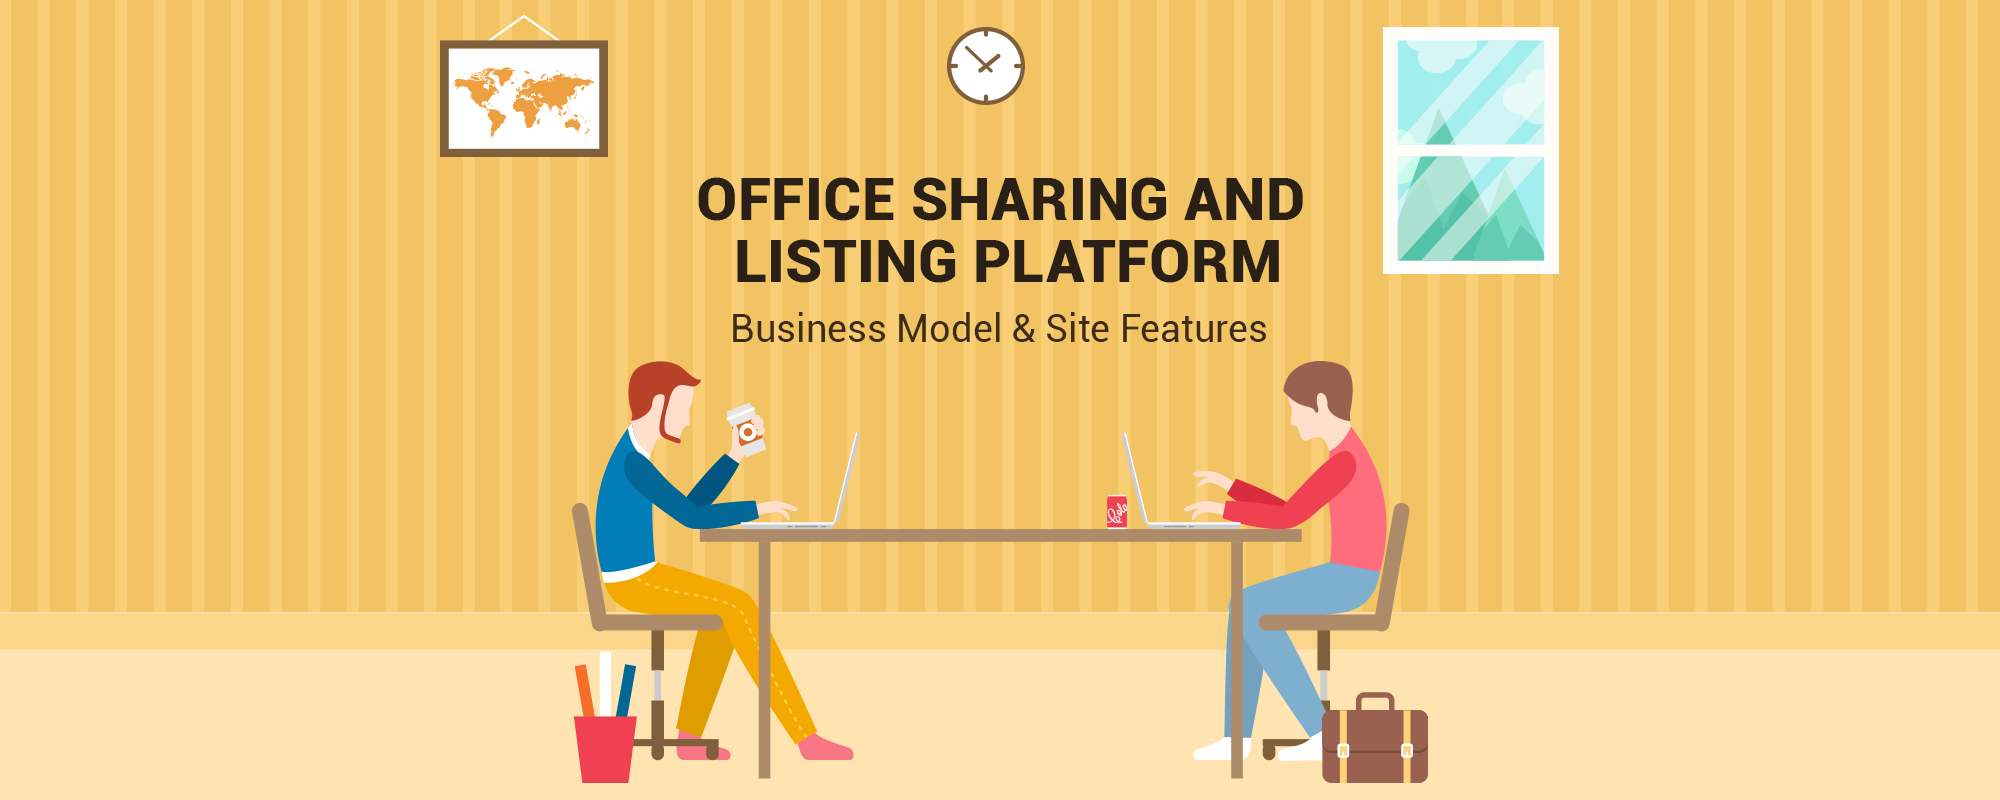 Build a Workspace Sharing Website with these Features – Complete Business Analysis